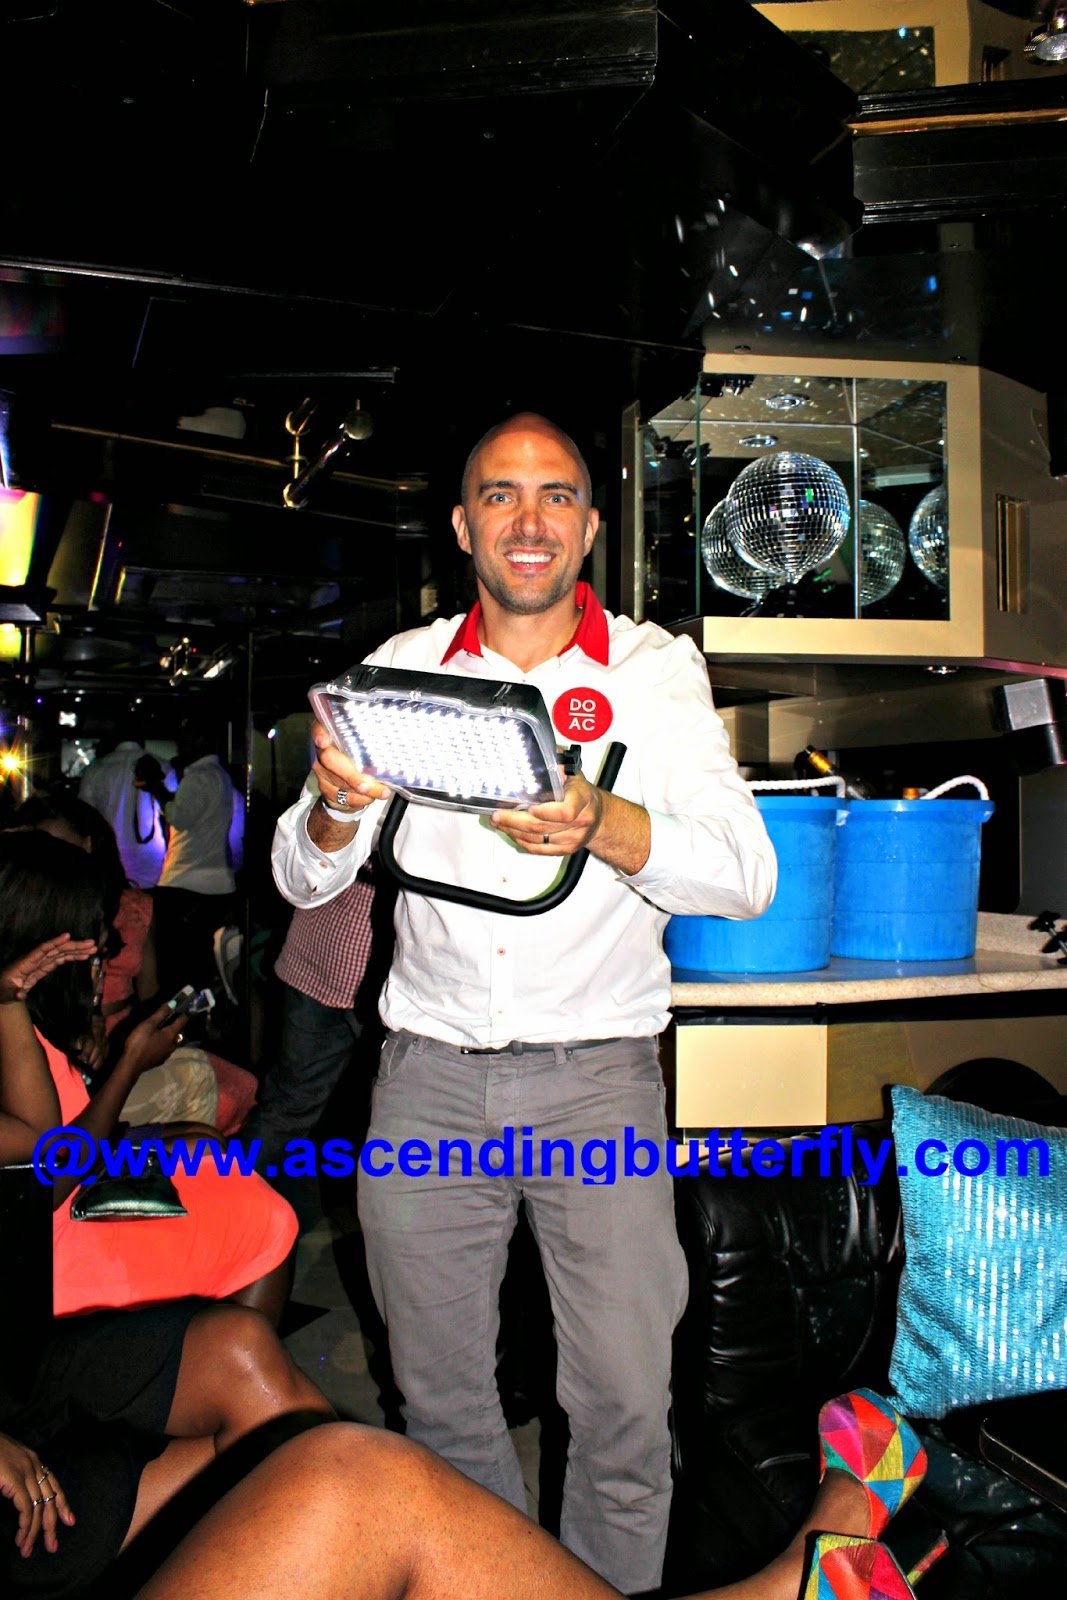 DJ Nigel Richards, #DOACNightlife Bus, Party Bus, Atlantic City, Visit AC, Atlantic City Alliance, DO AC, DO AC Nightlife